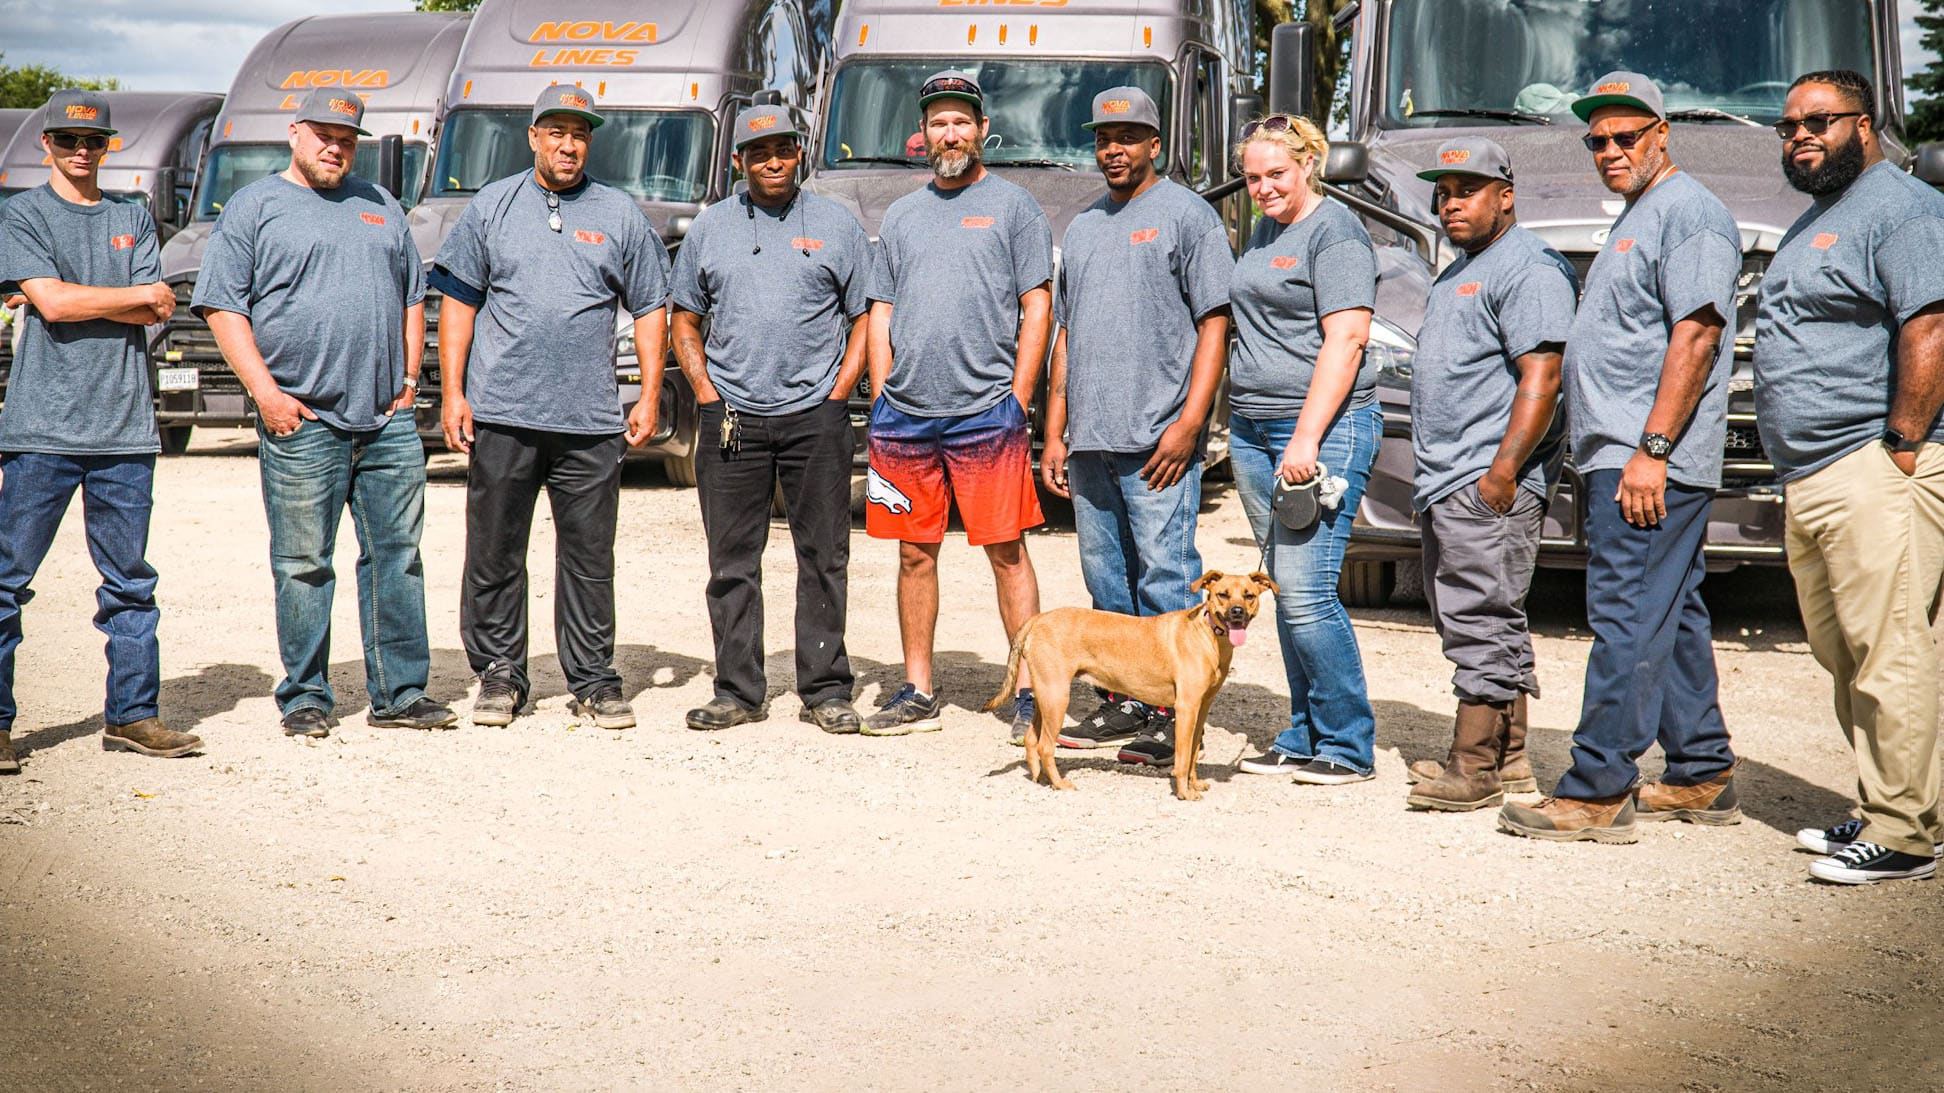 Ten Nova Lines truck drivers and one brown dog, lined up in front of their trucks.